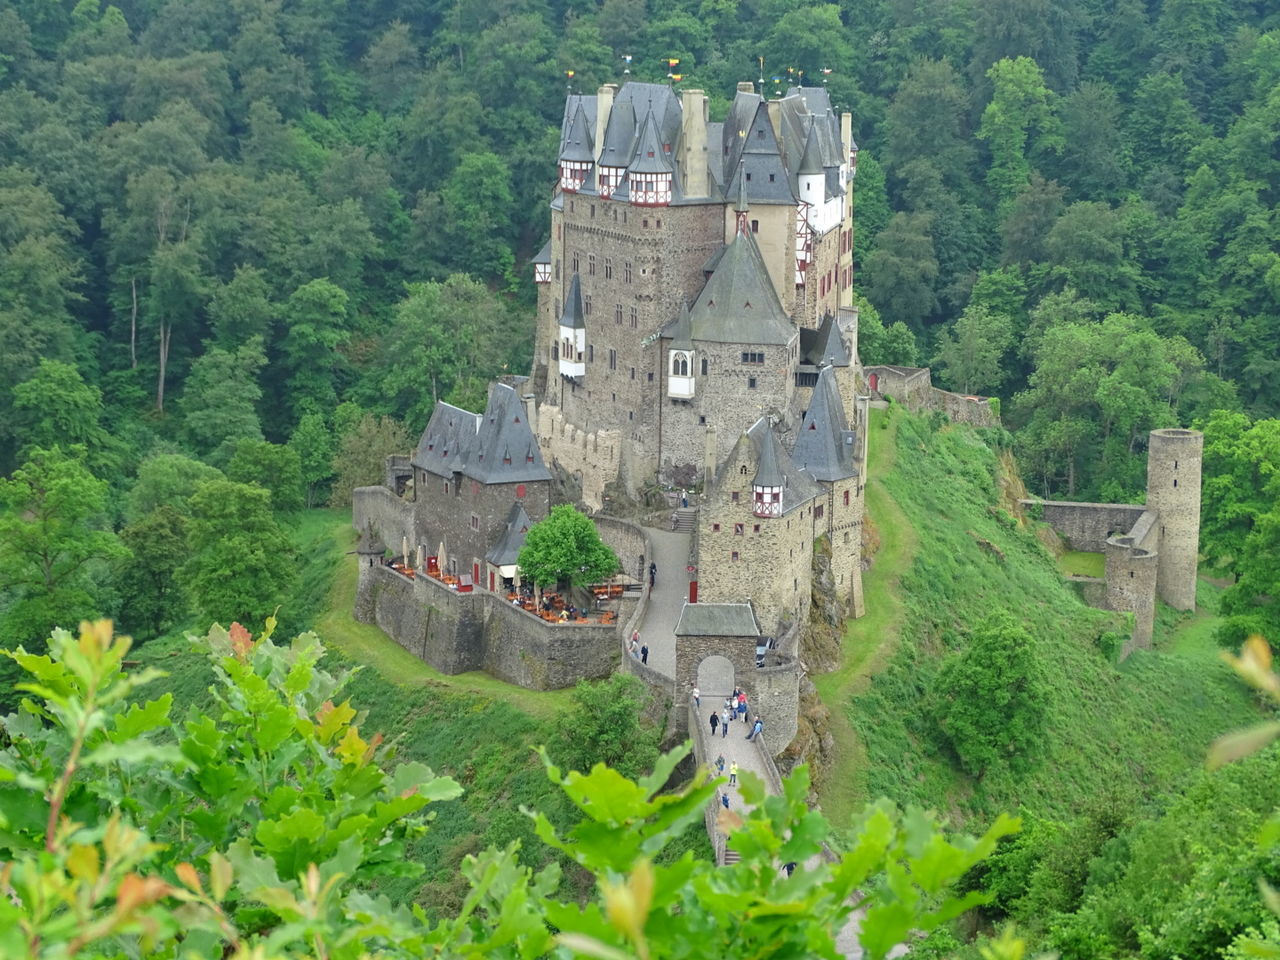 Burg Eltz Burg Eltz Castle Castles Castle View  Castle In Germany Beautiful Castle Beautiful Castles In Europe Beautiful Buildings Beautiful Nature